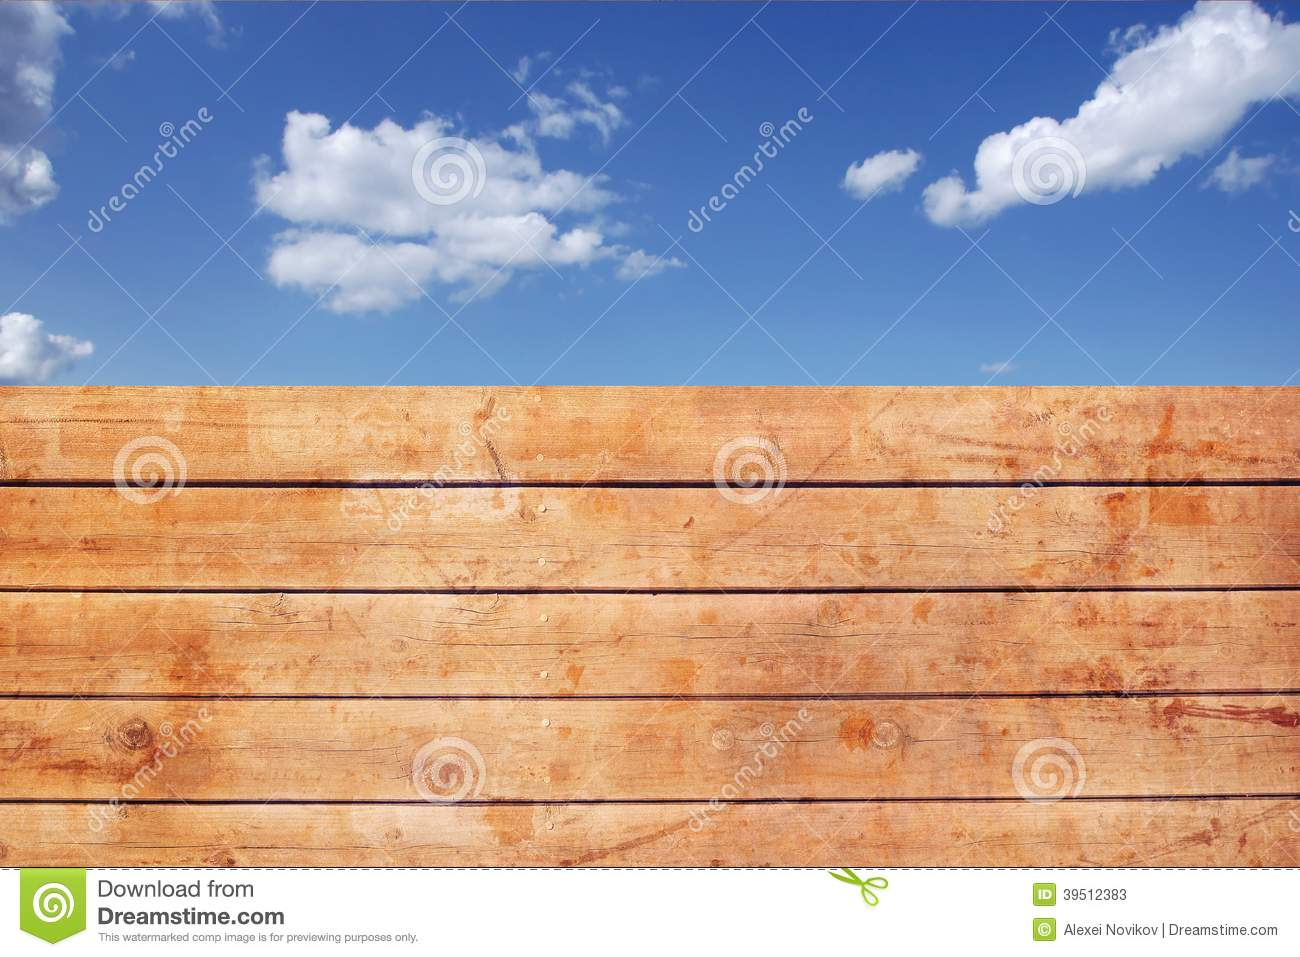 Wooden Grungy Fence and cloudy sky, XXXL Backgrond